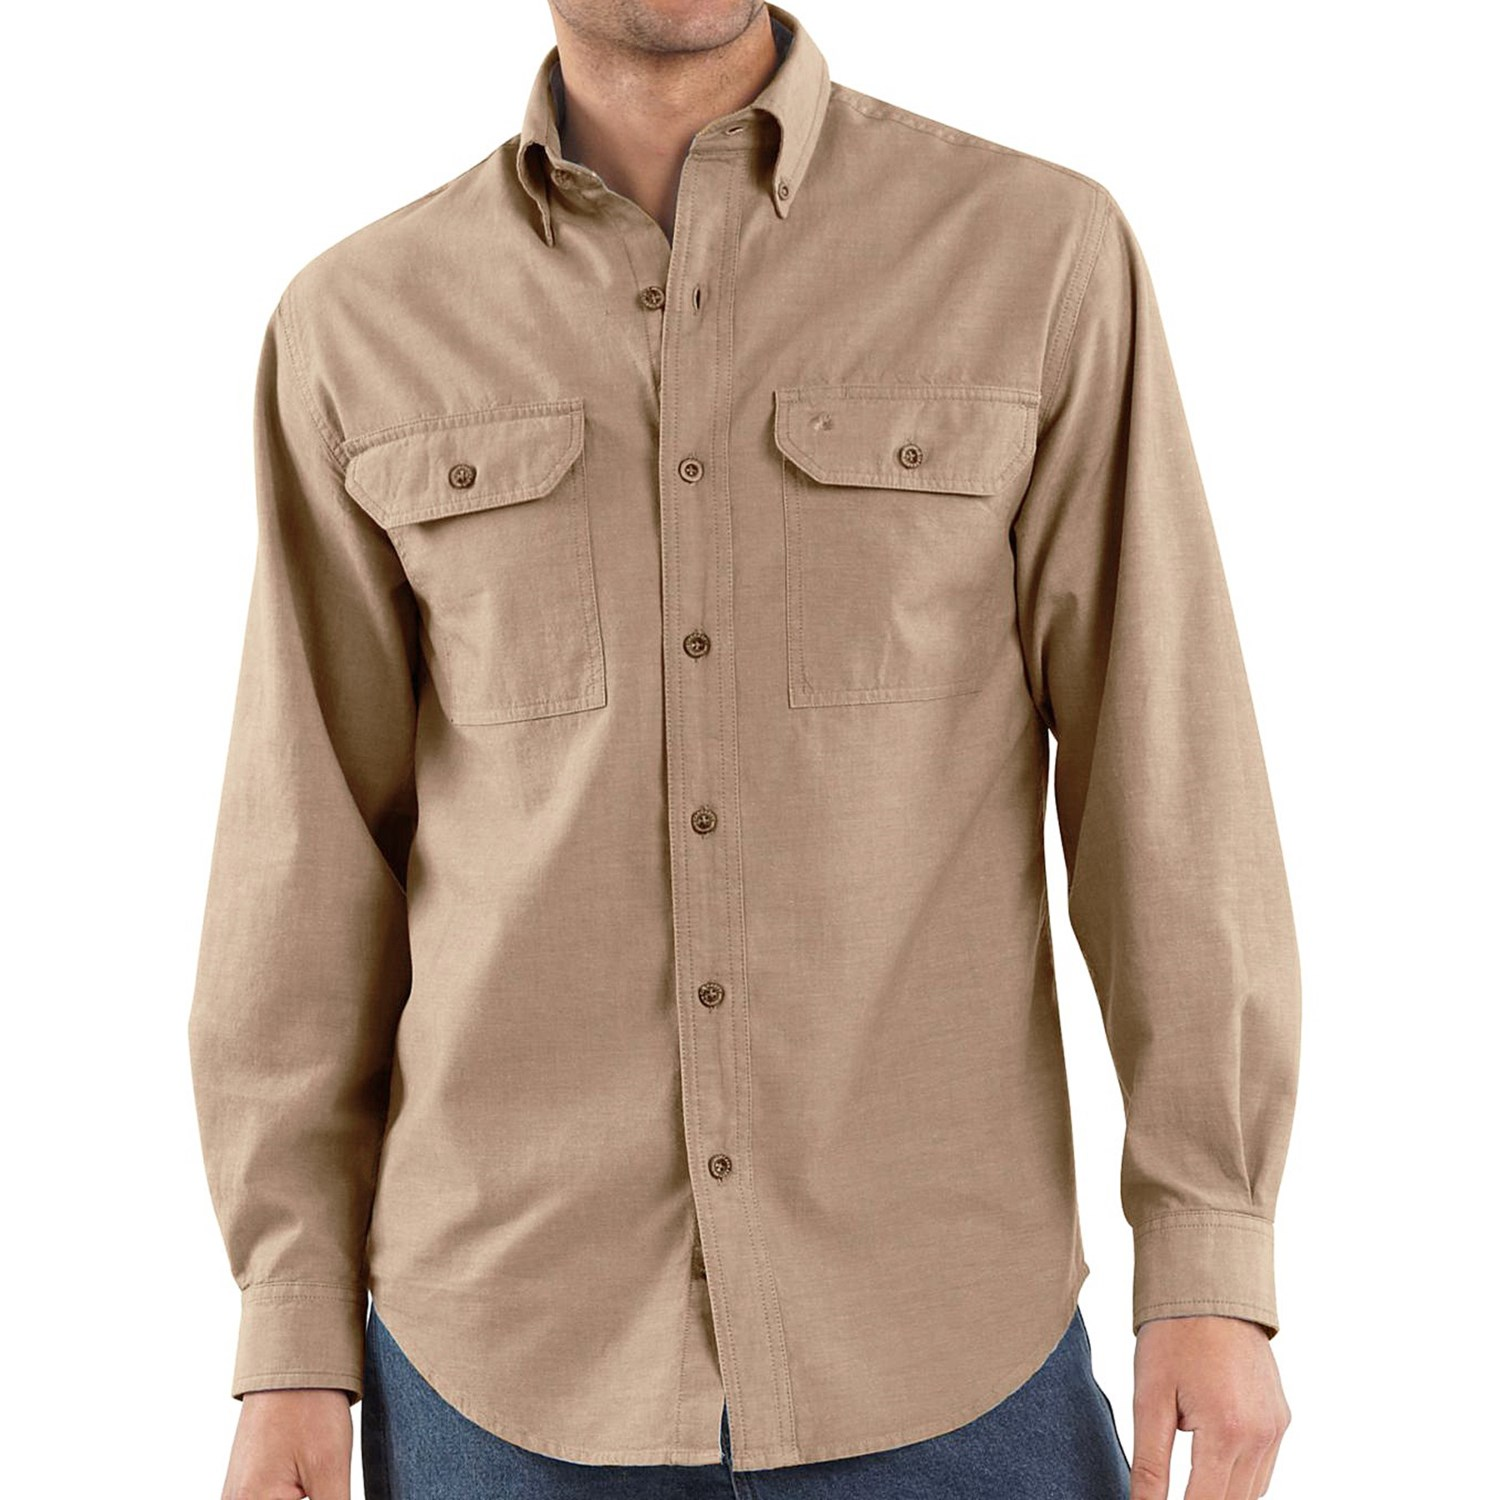 Gap Icon Worker Chambray Shirt. For a more blue-jeany button-up look, but without the heavy fabric, there's the Gap Icon Worker Chambray Shirt. Made more like an old-school work shirt you might see in a factory or machine shop than under a blazer, this button-up is made from % cotton and is completely machine washable.